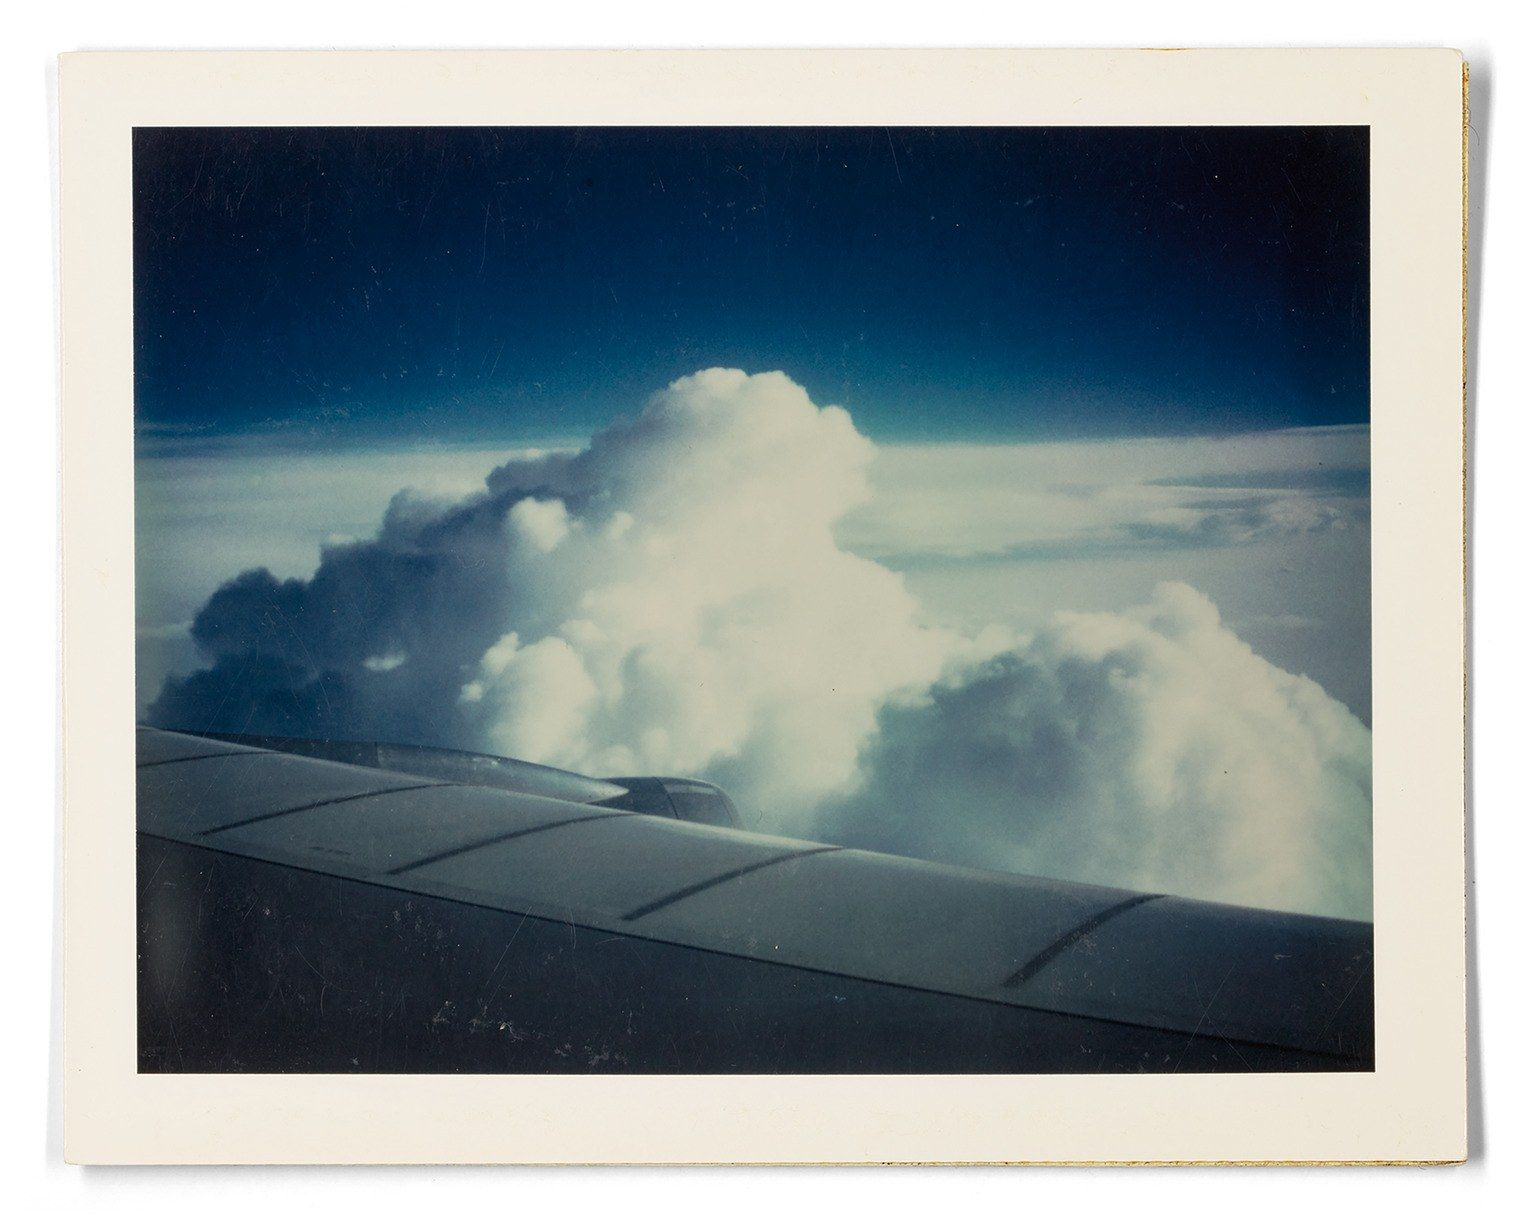 At the auction in London, the unique polaroids of Andrei Tarkovsky were sold